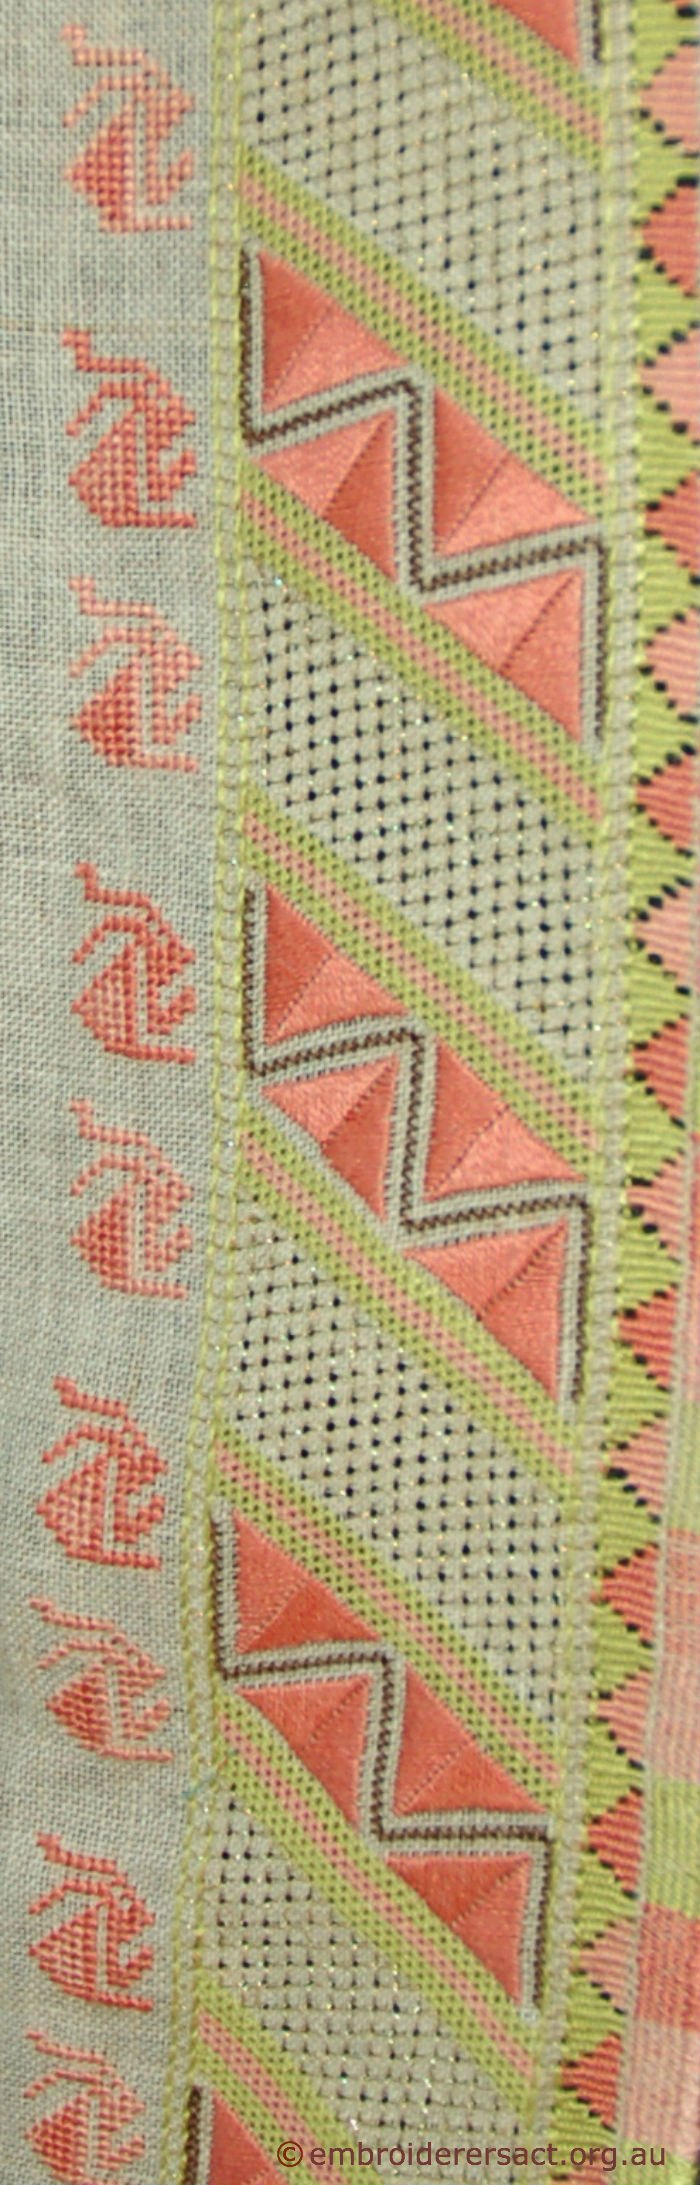 Detail of Thracian Embroidery stitched by Polly Templeton